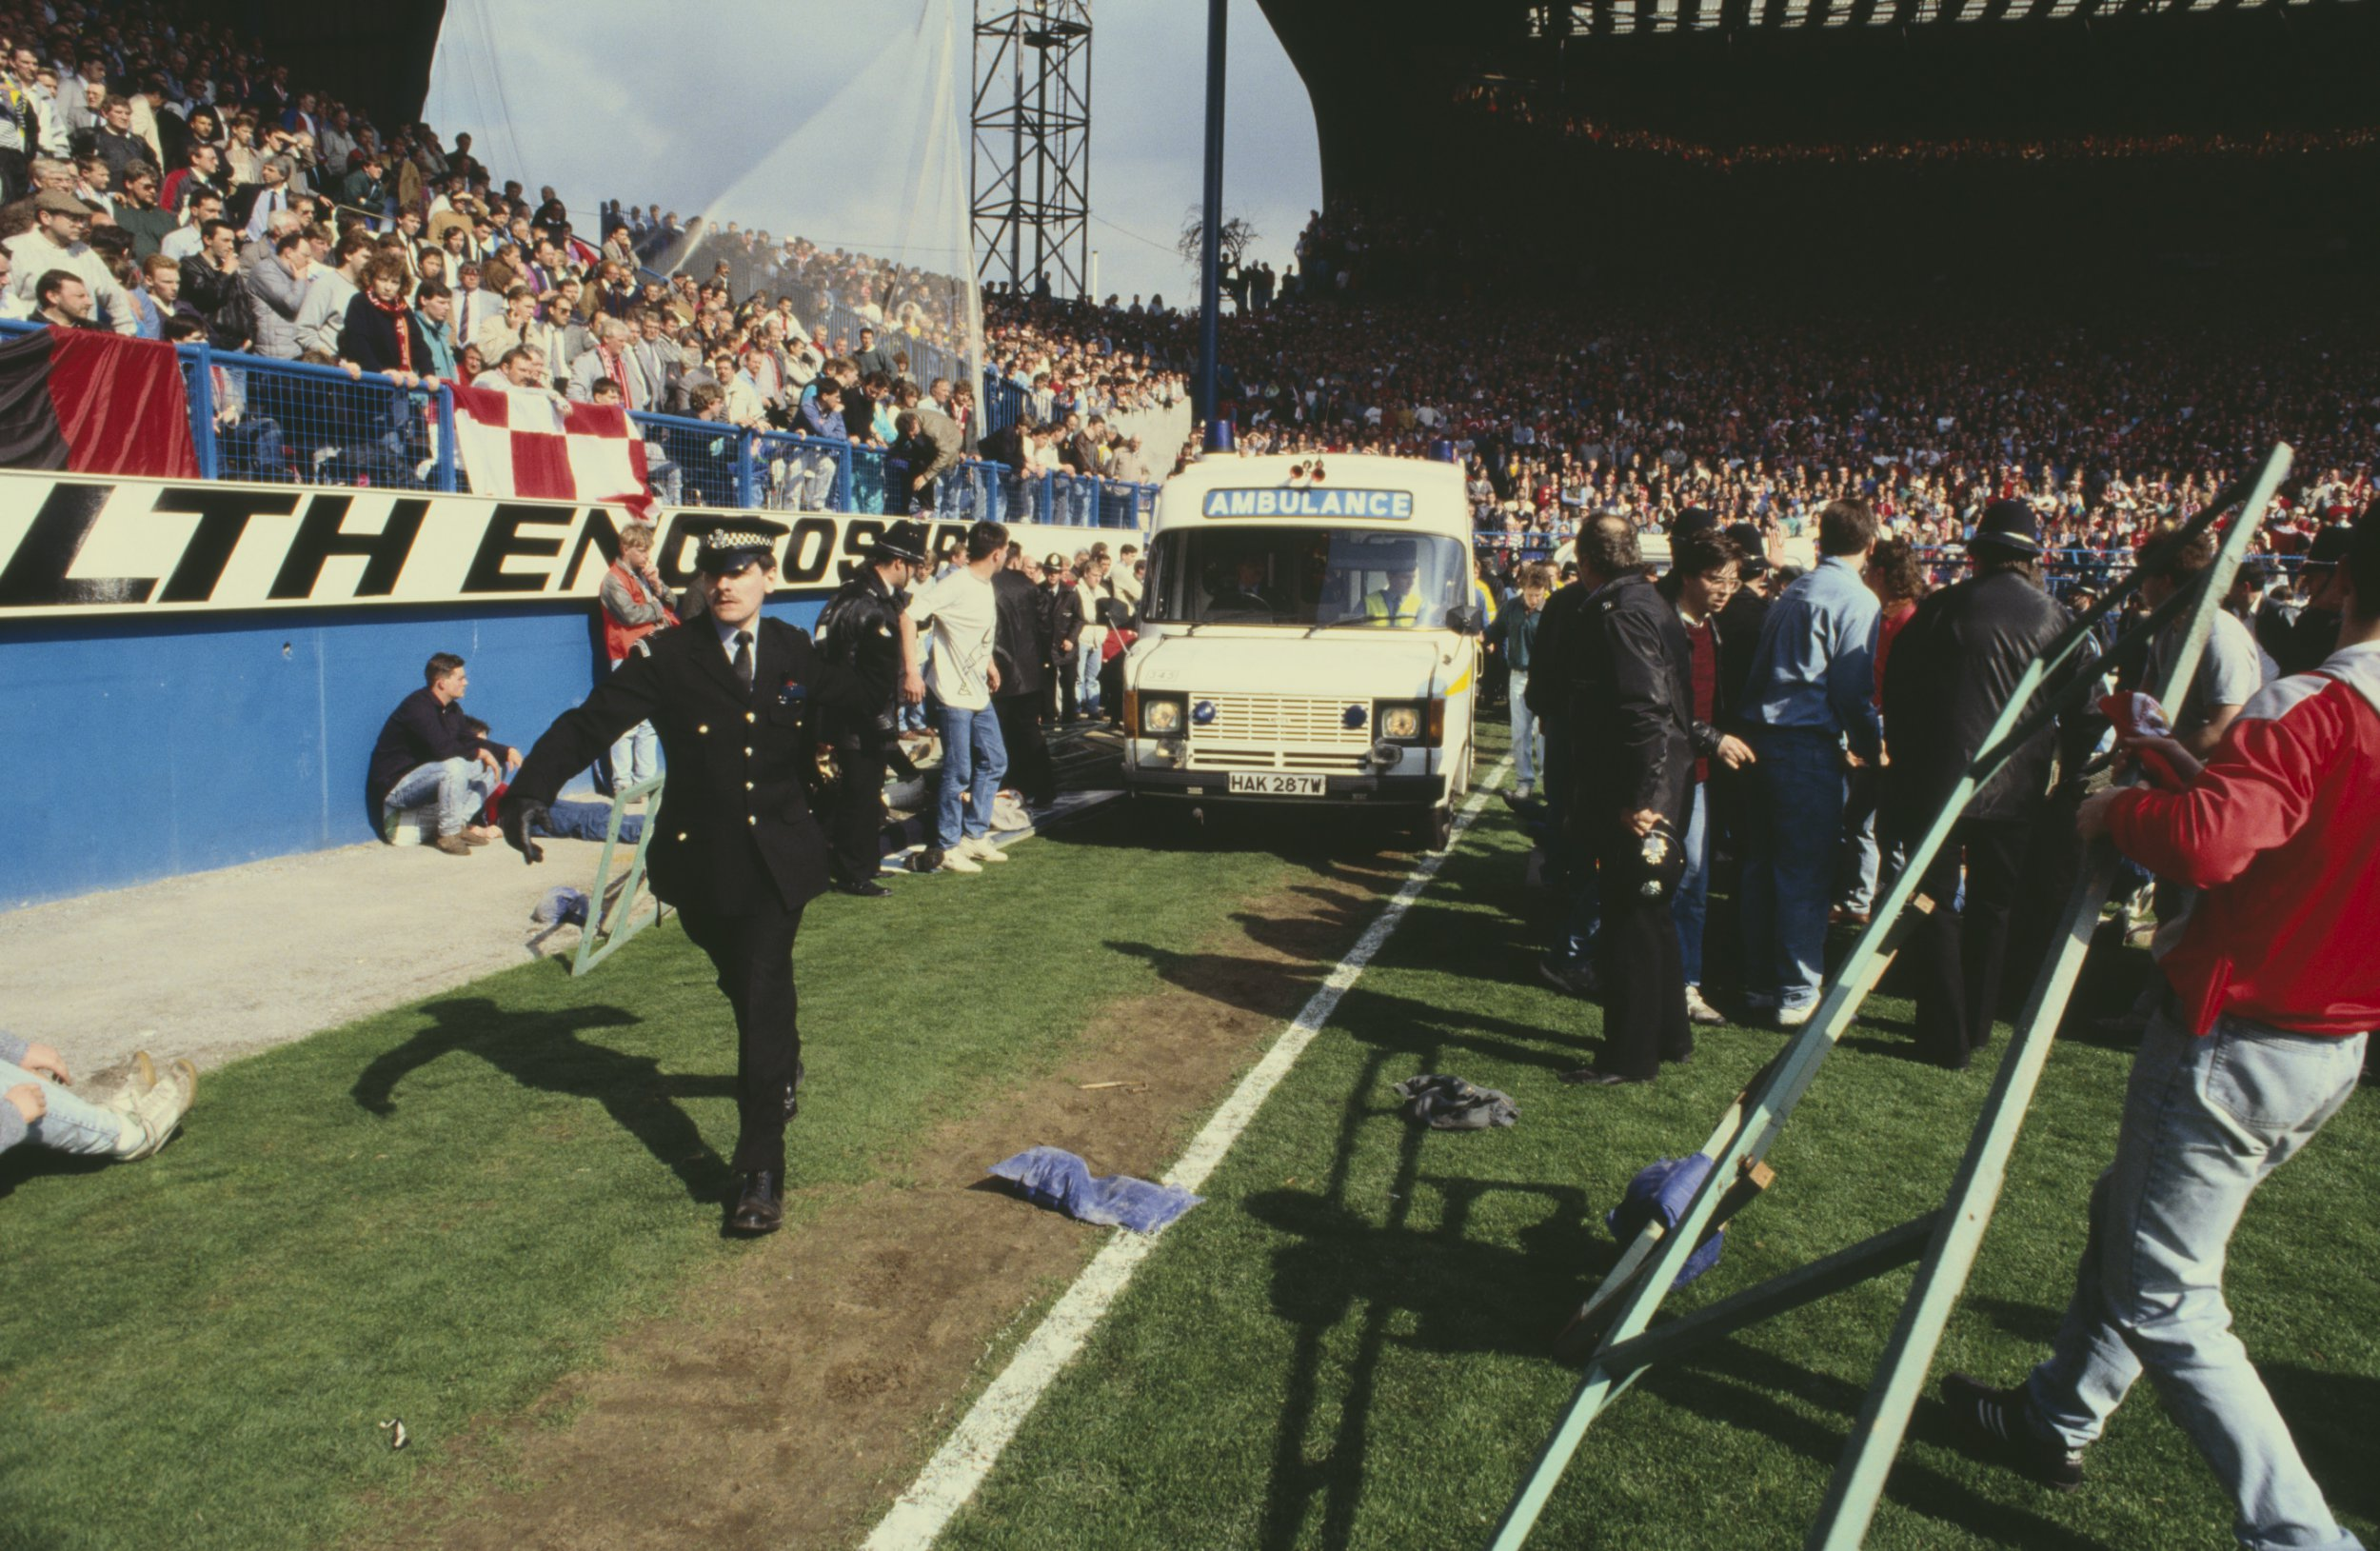 When was the Hillsborough Disaster and how many people died?